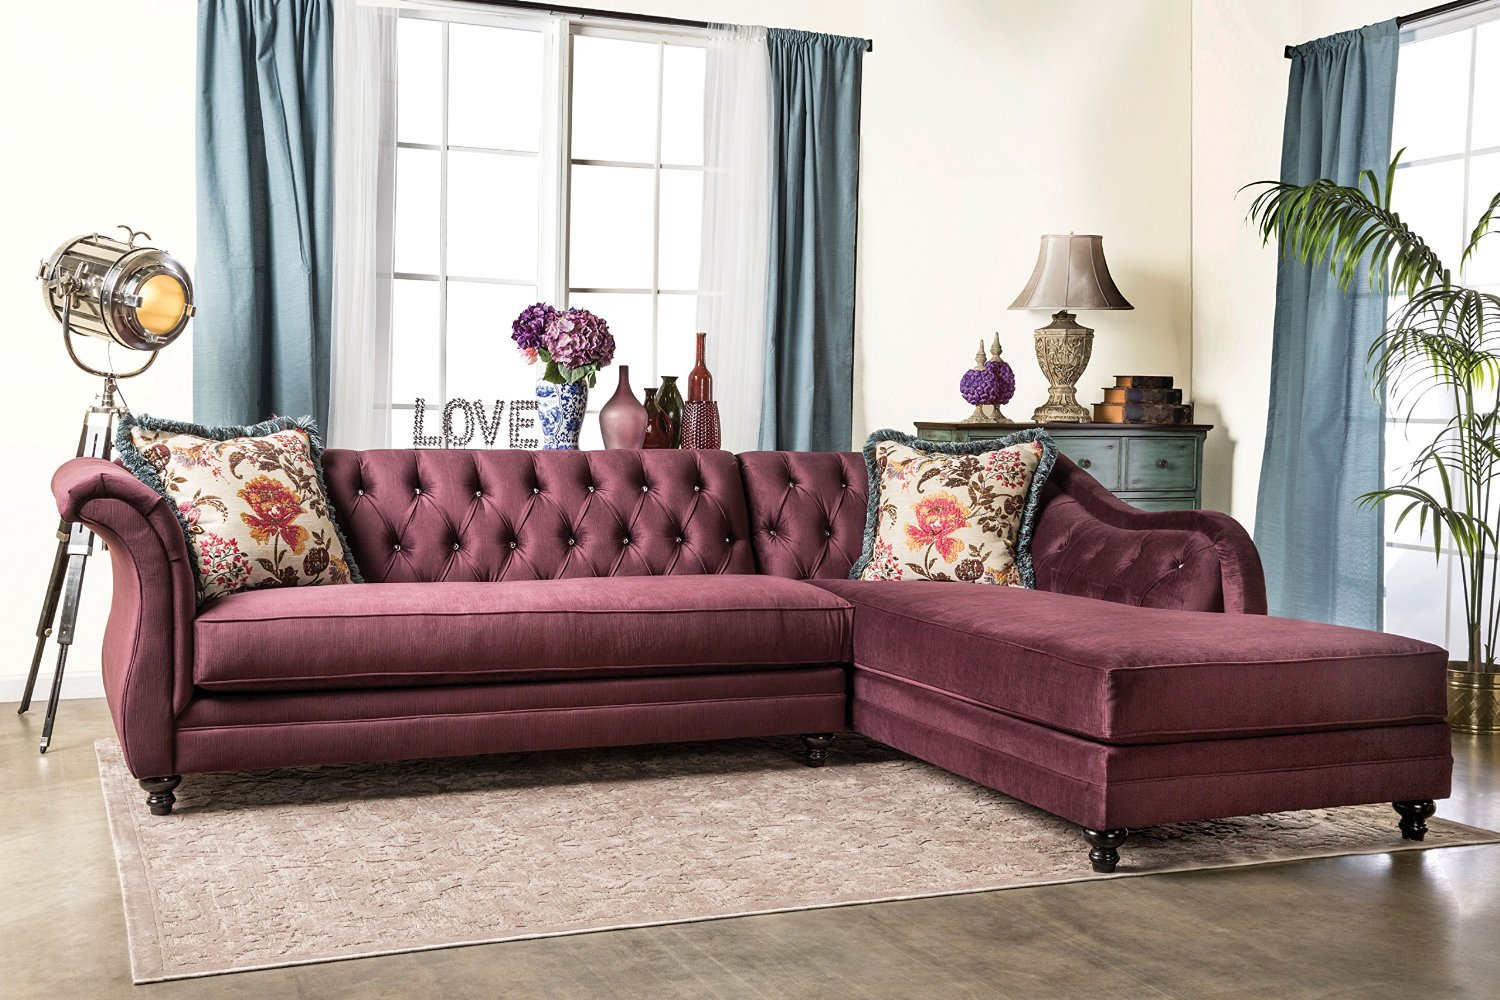 glam sofa set best sleeper sofas consumer reports 25 chesterfield to buy in 2019 furniture of america 2 piece corinee glamorous sectional